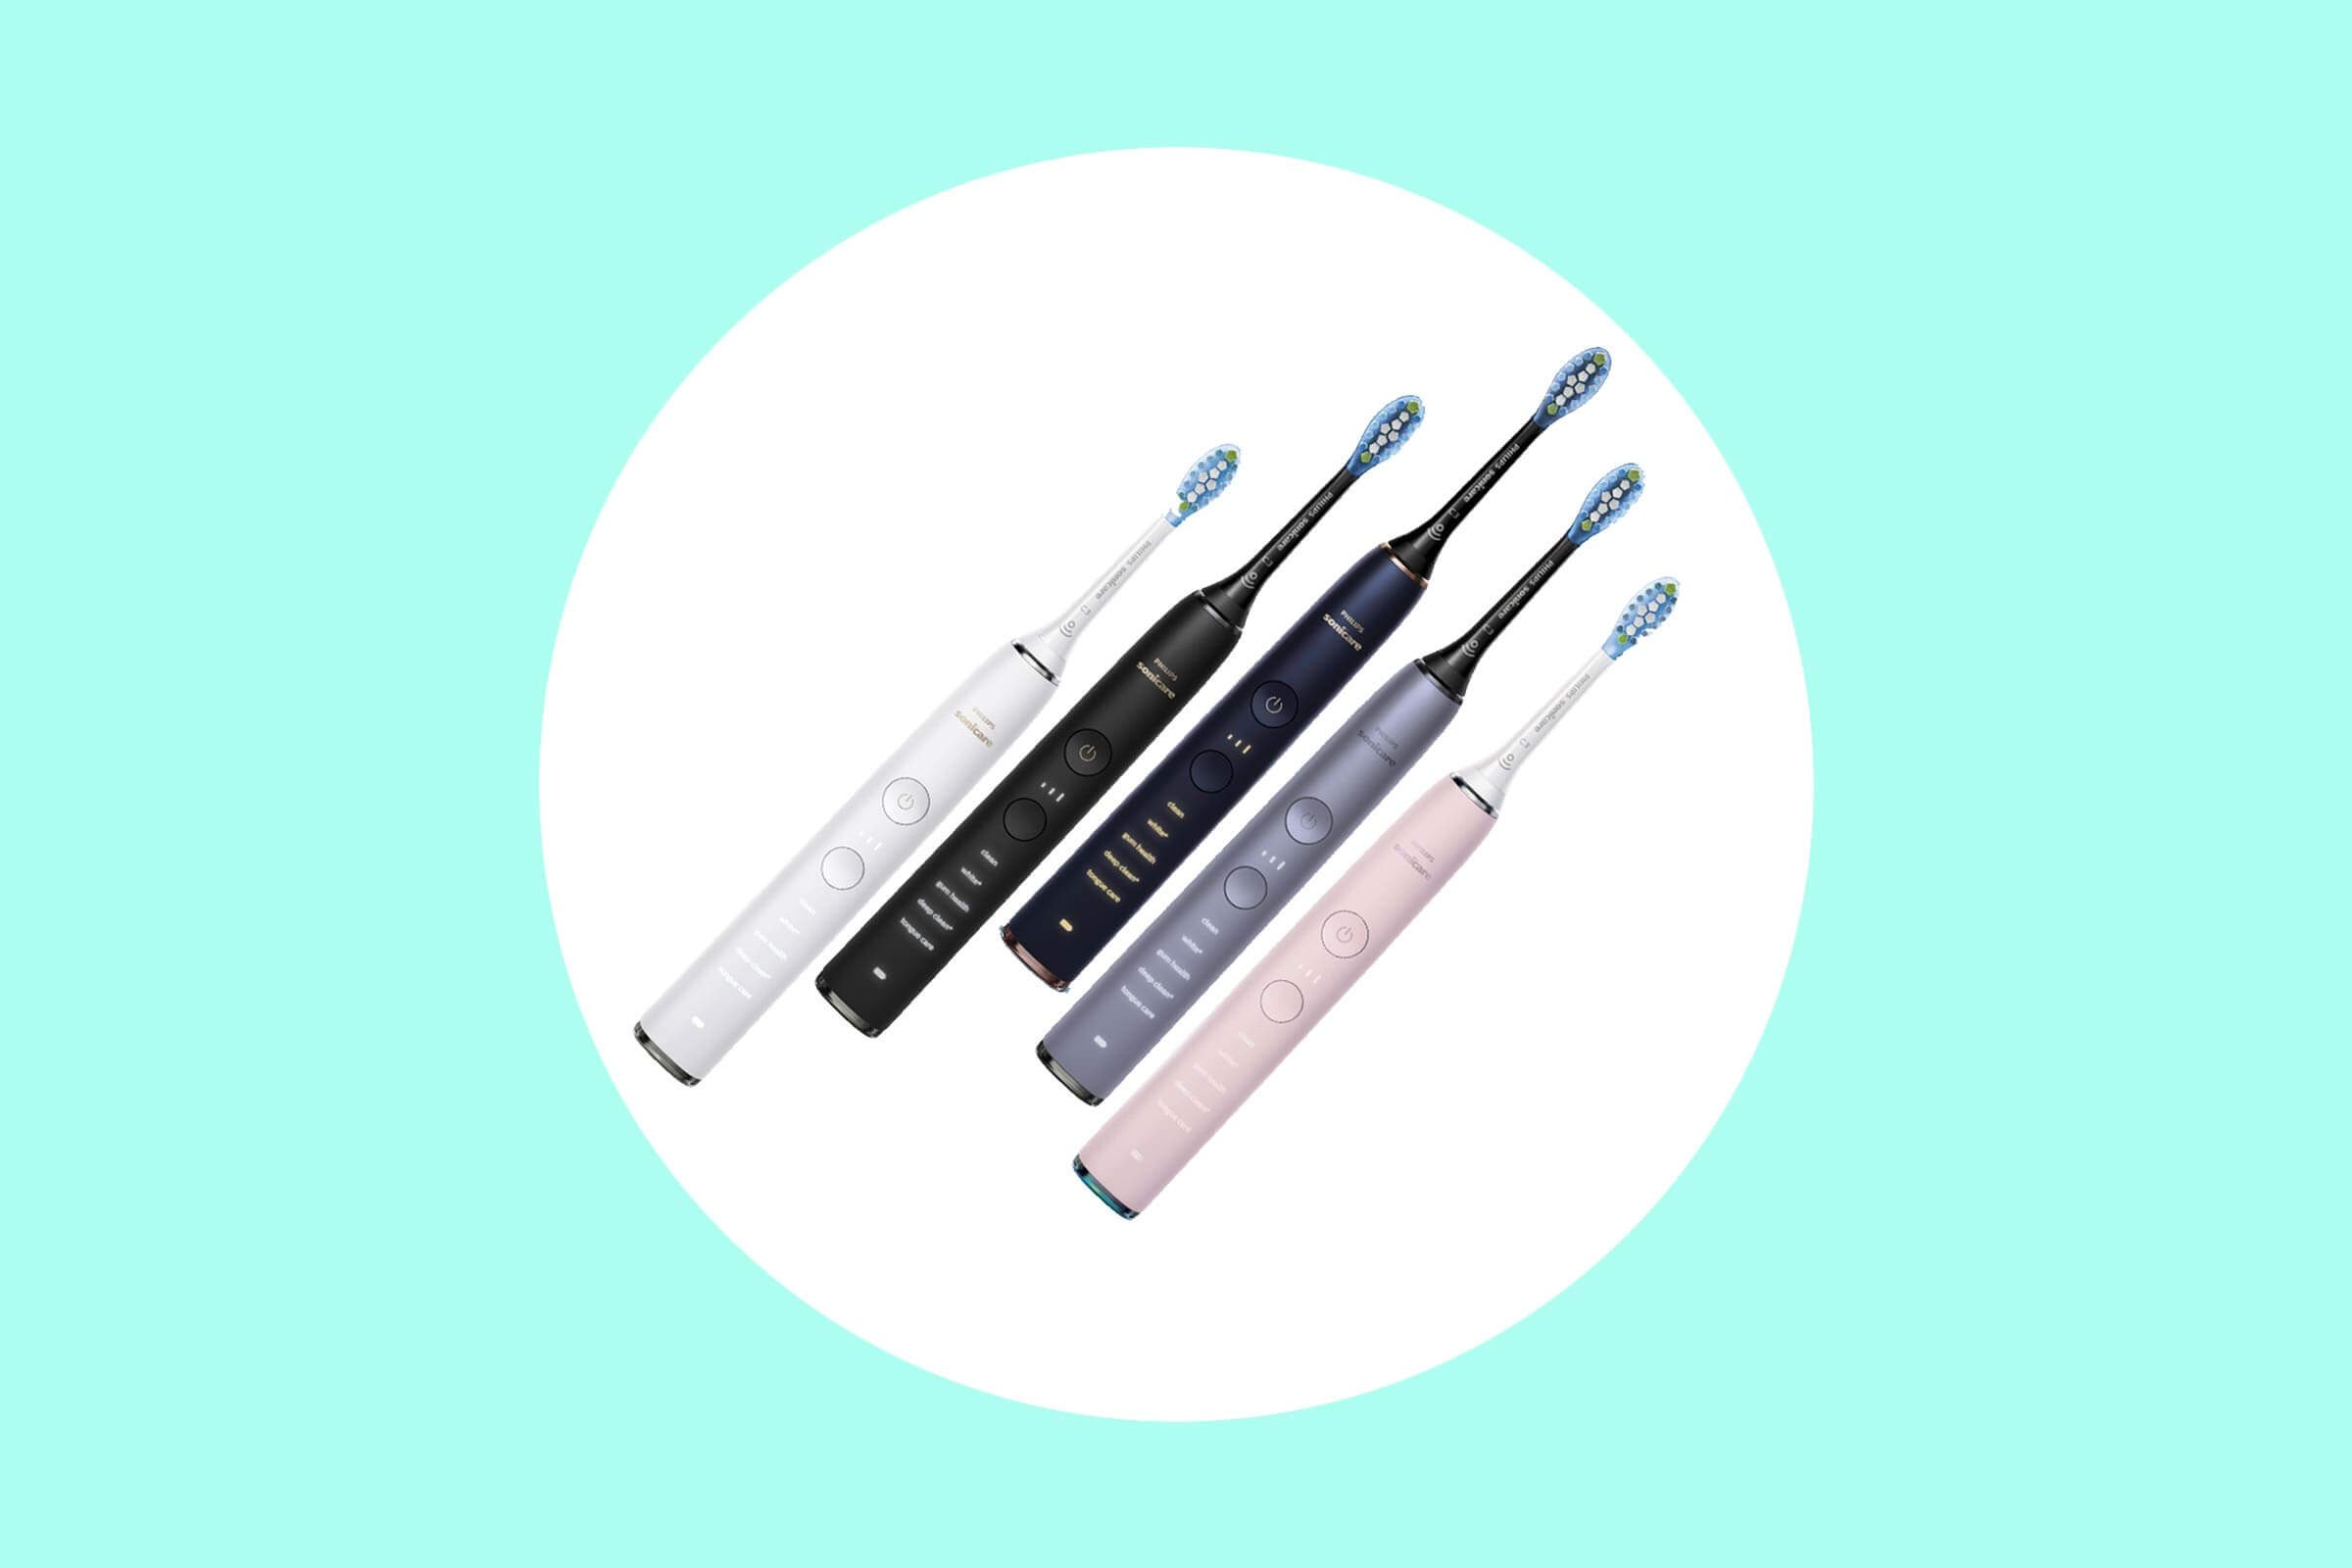 Philips Sonicare toothbrushes in multiple colors.